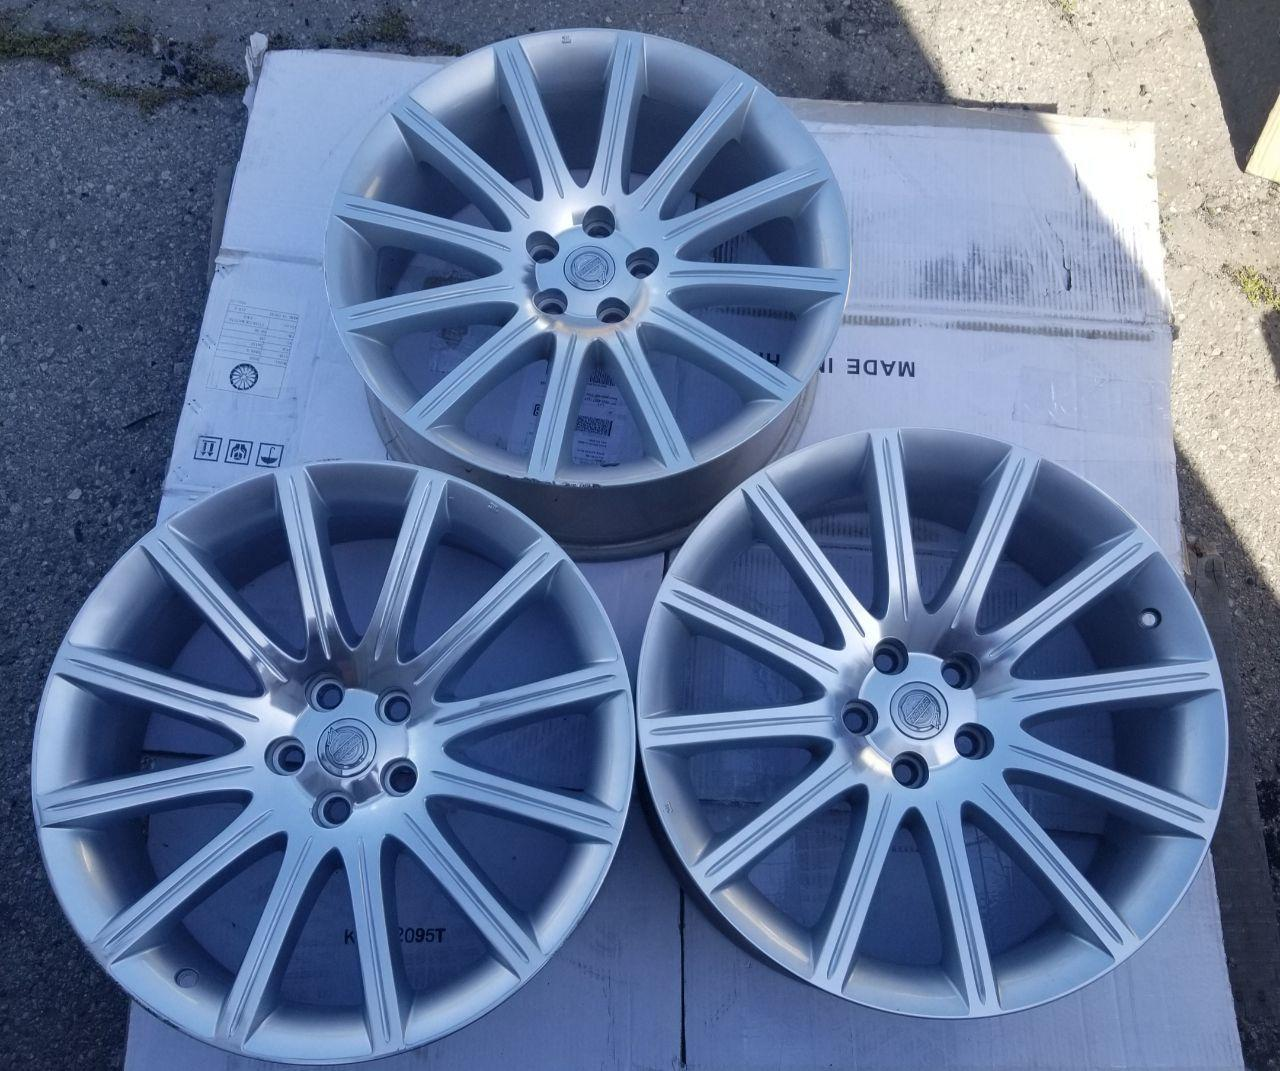 - OEM WHEELS - 2007-2010 DODGE/CHRYSLER 300 20X9 12 SPOKE Hollander #2281 /  USED